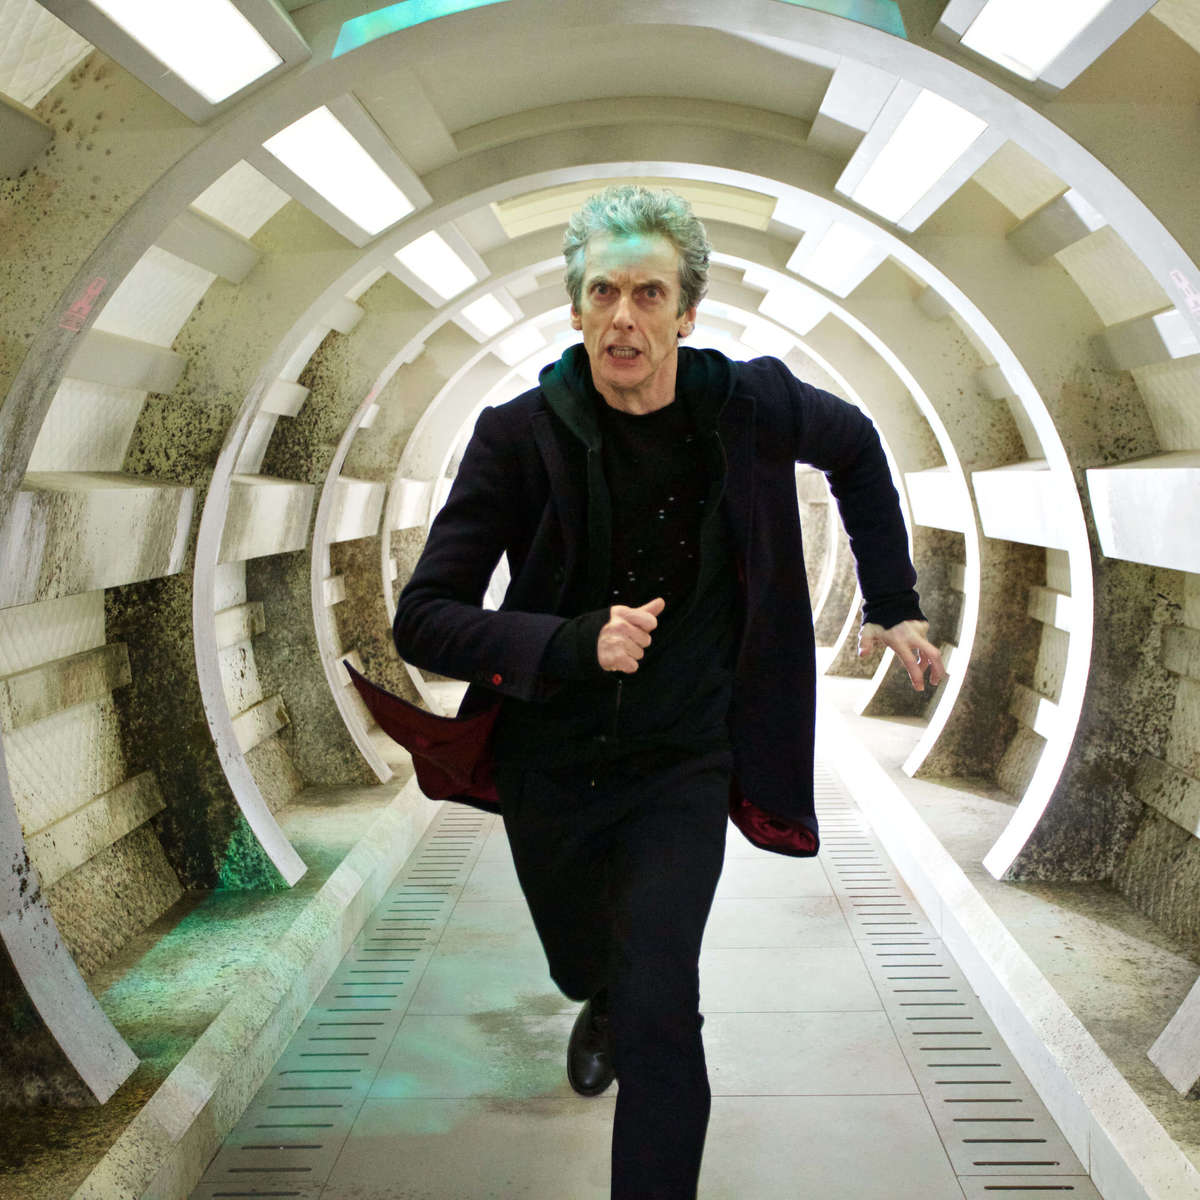 9304556-high_res-doctor-who.jpg